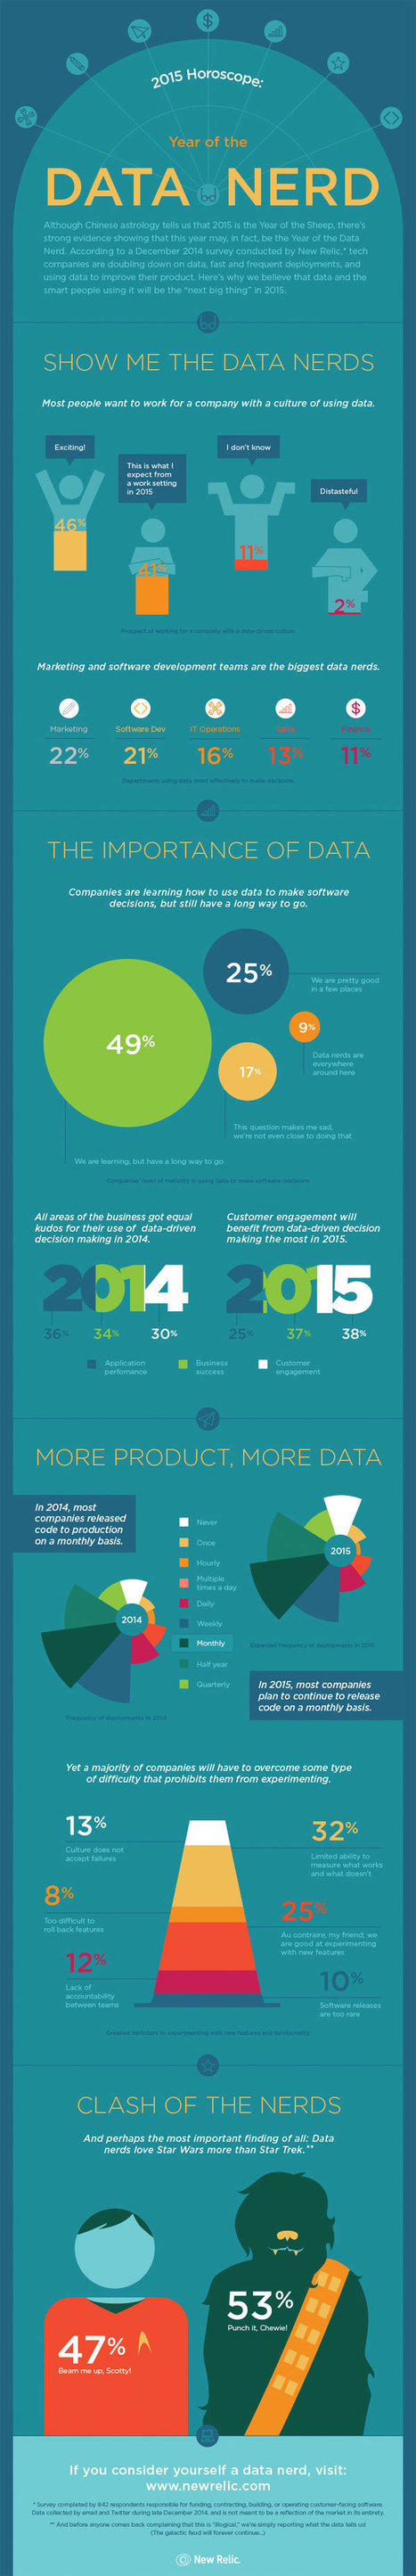 2015: The Year of the Data Nerd [Infographic] | Social Foraging | Scoop.it